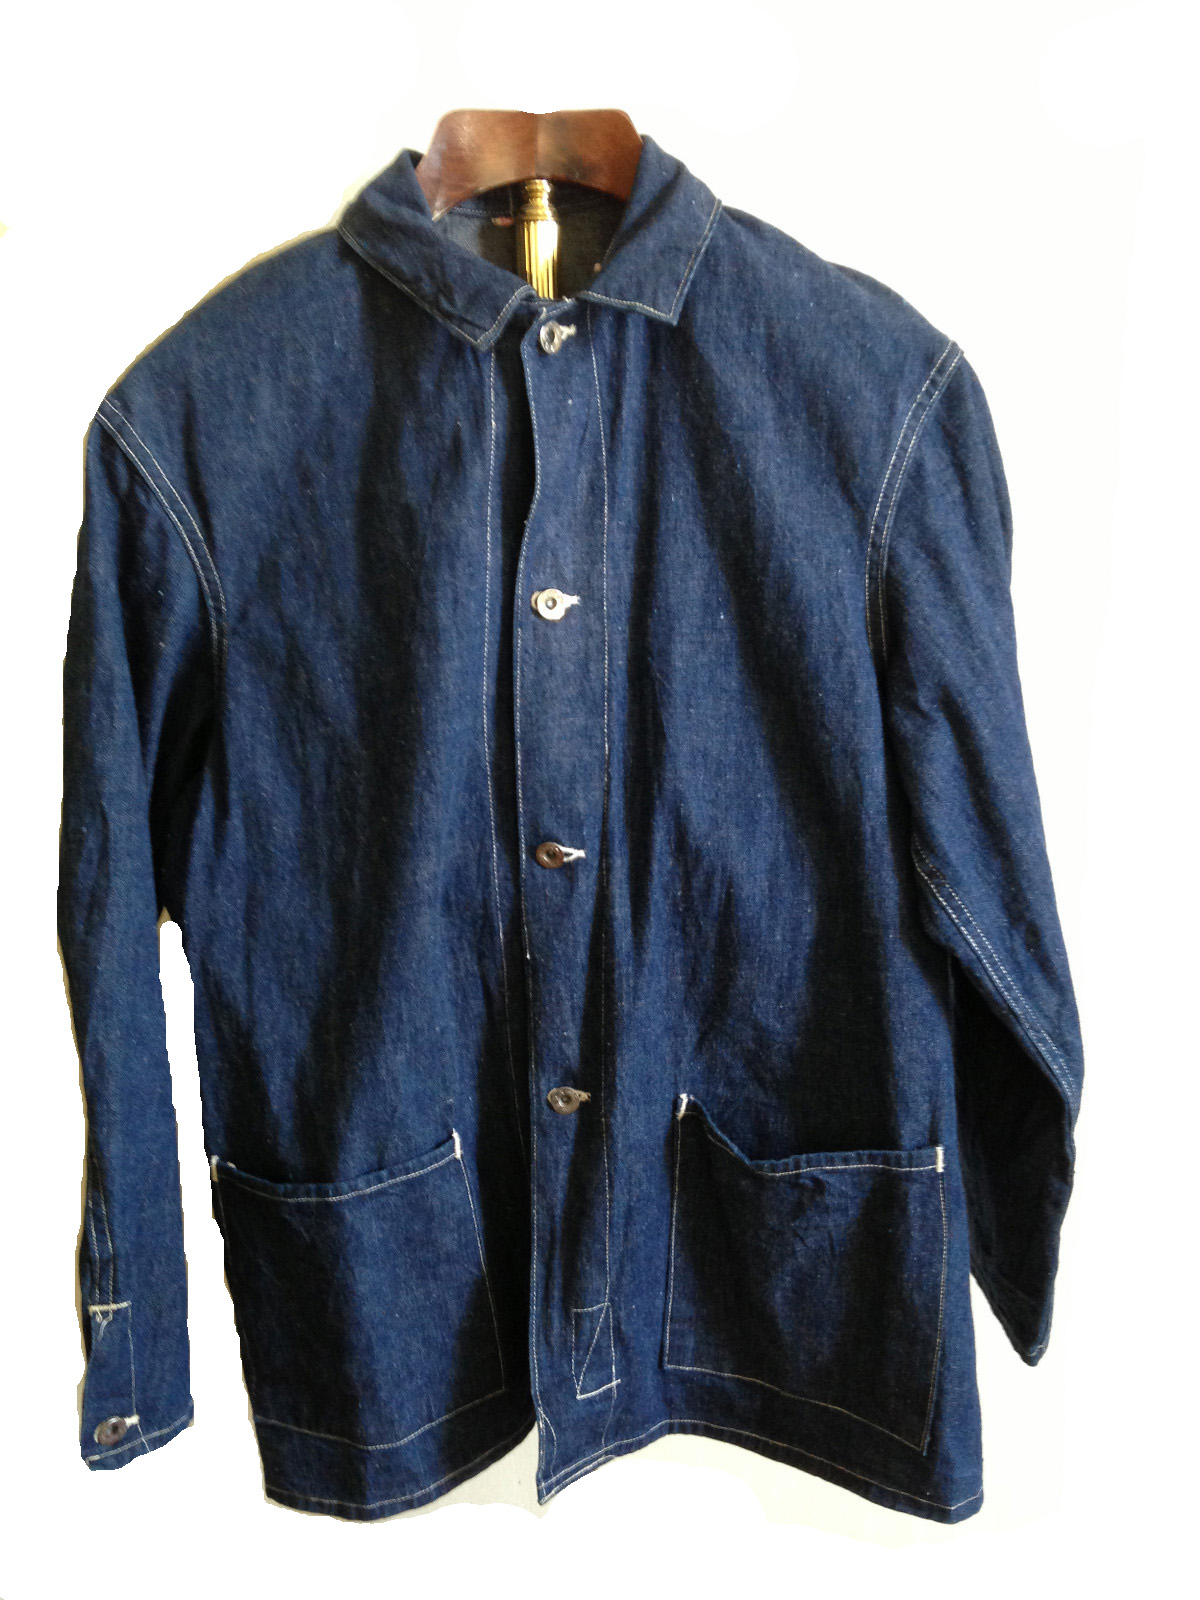 God! Well Vintage mens two pocket denim shirt happiness!